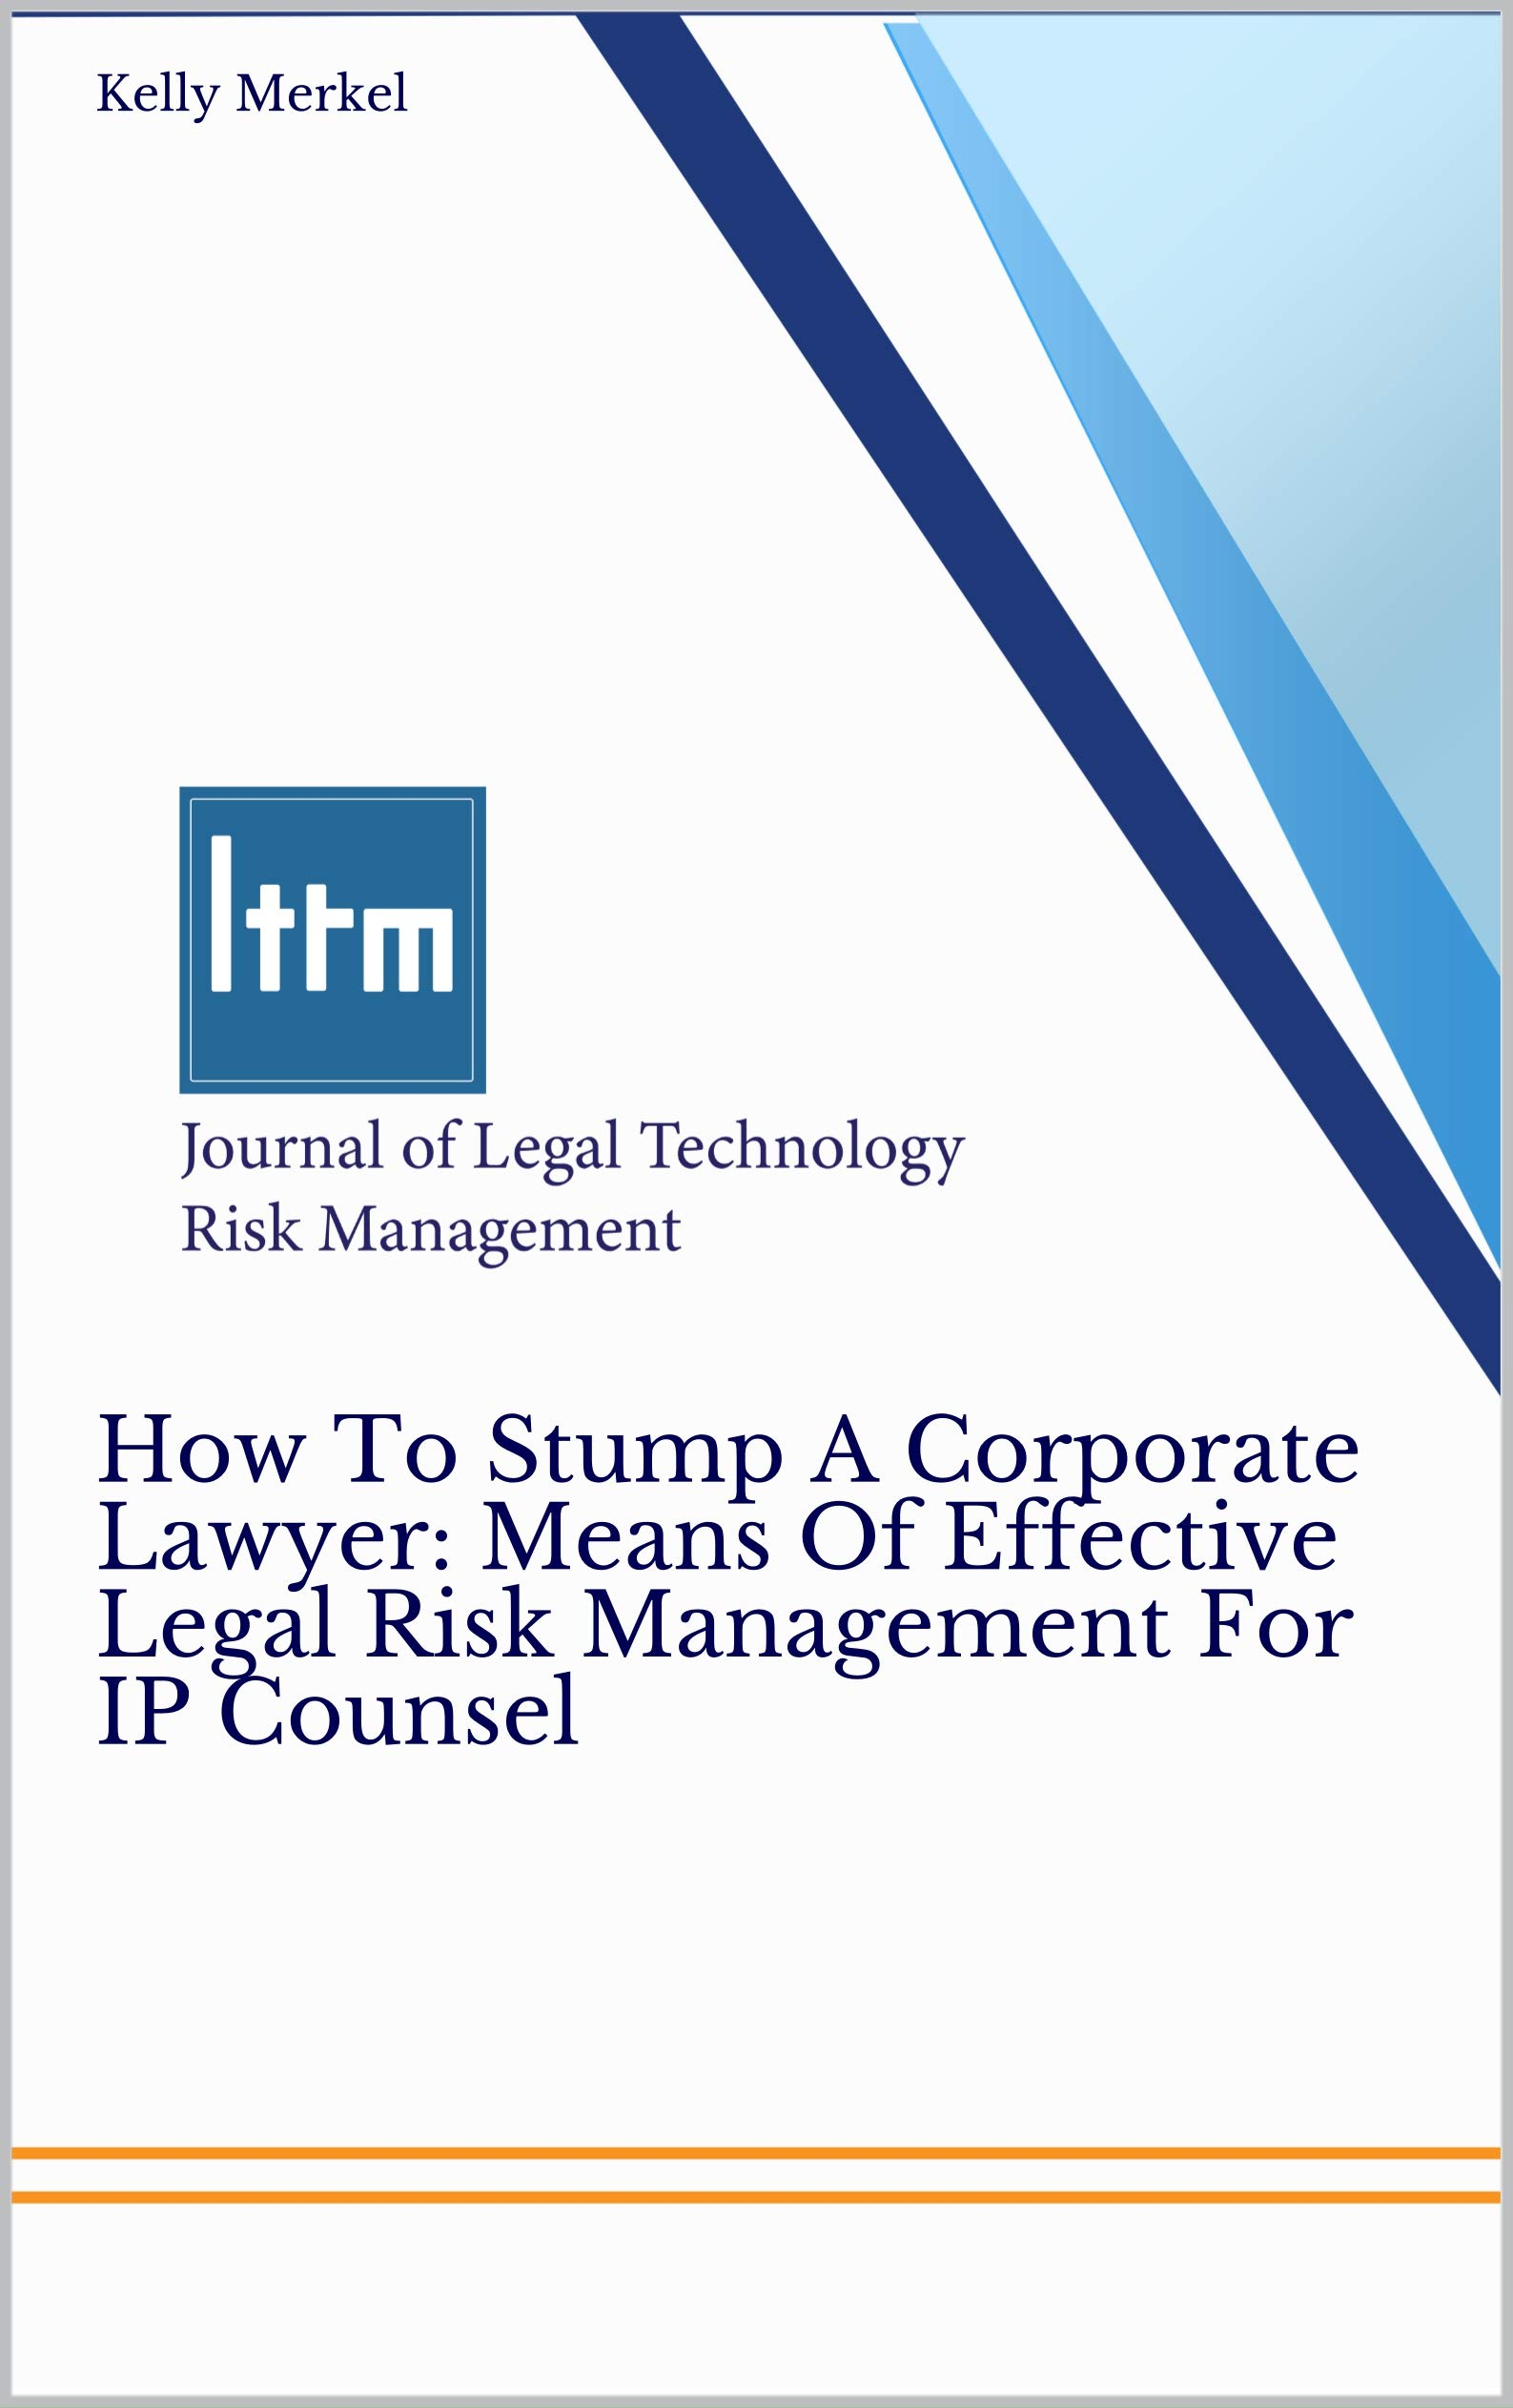 How To Stump A Corporate Lawyer: Means Of Effective Legal Risk Management For IP Counsel: Journal of Legal Technology Risk Management